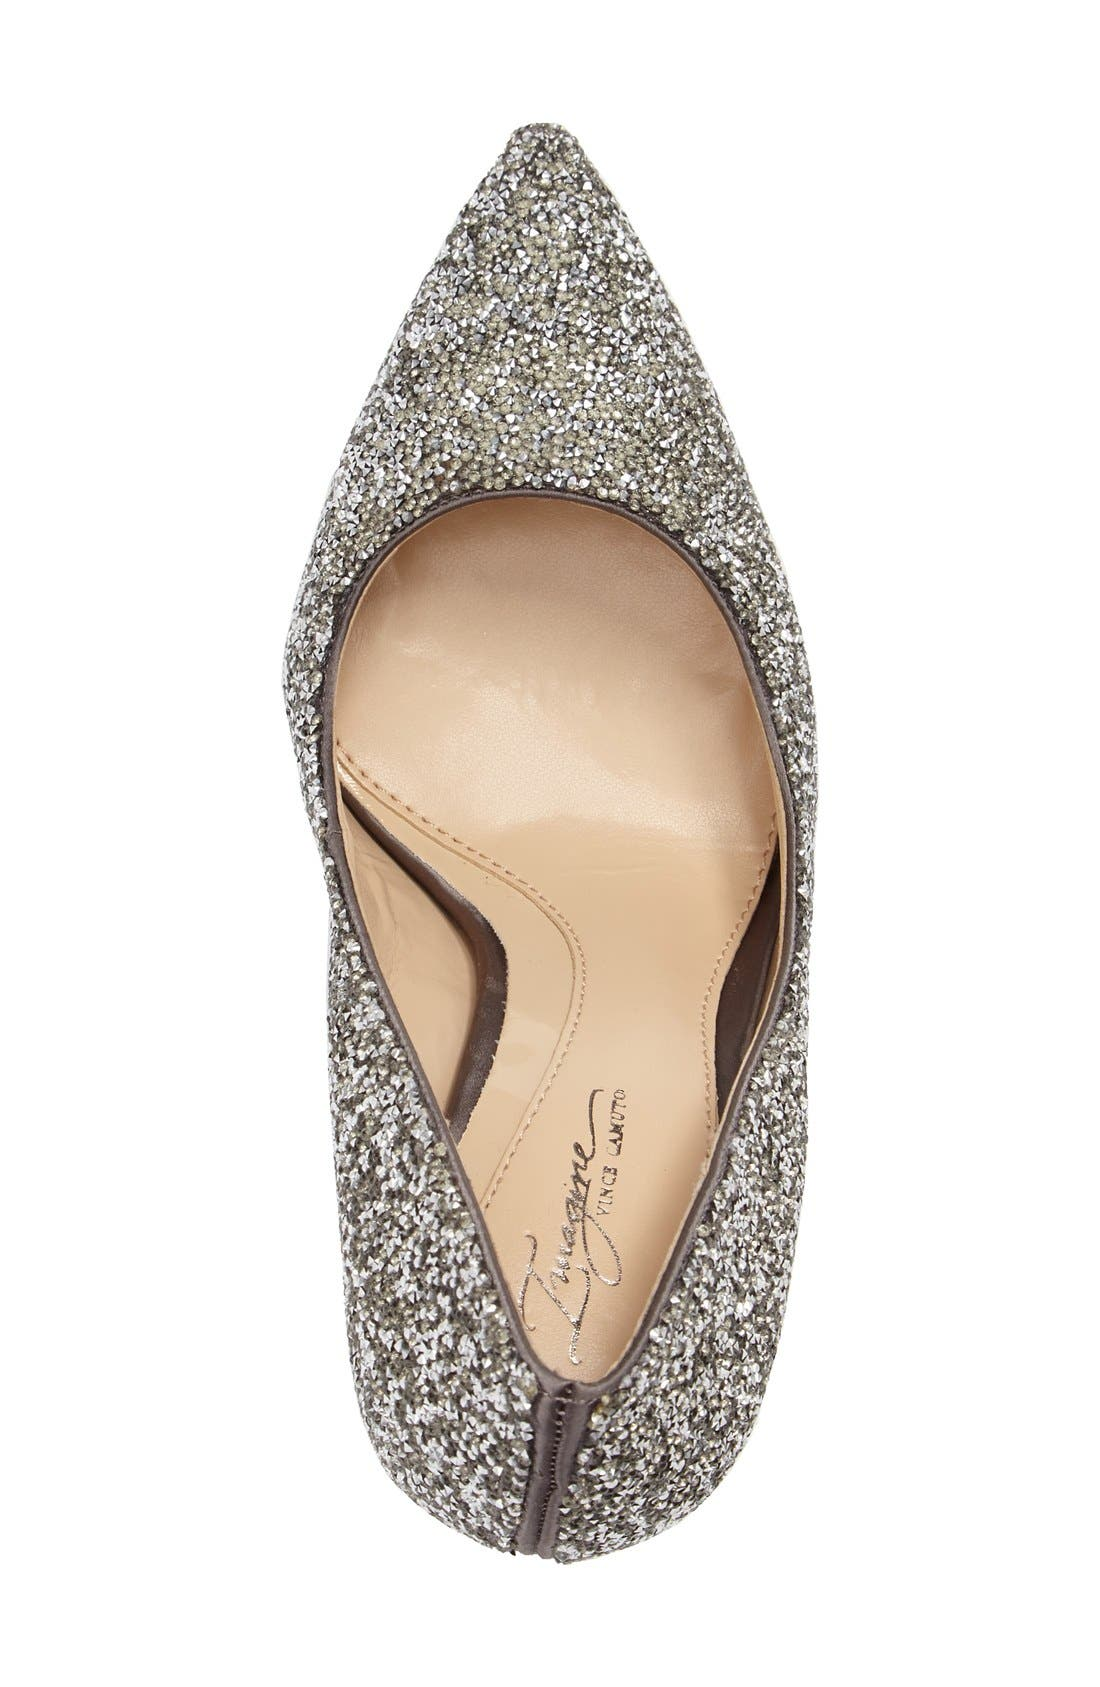 Alternate Image 3  - Imagine by Vince Camuto 'Olson' Crystal Embellished Pump (Women)